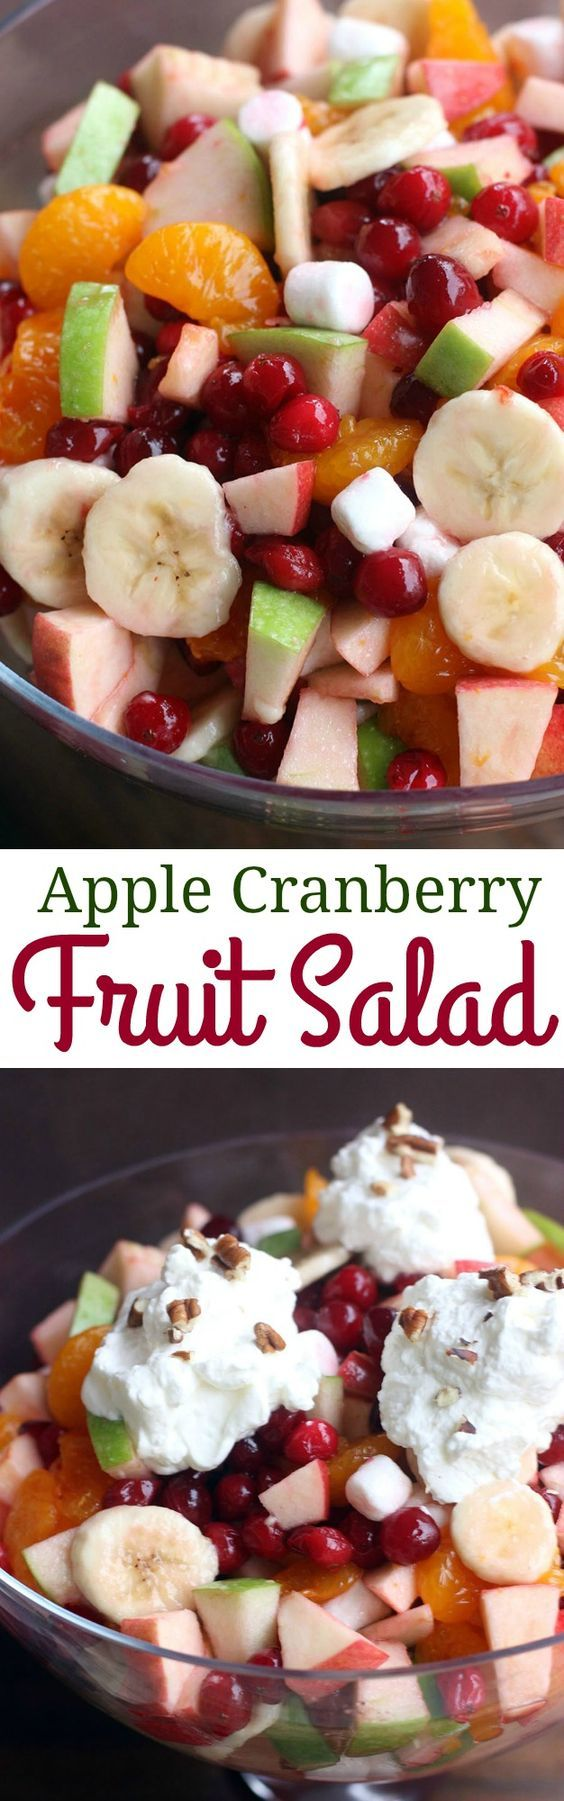 Apple Cranberry Salad is perfect for an easy Thanksgiving side dish everyone will love! | Tastes Better From Scratch: